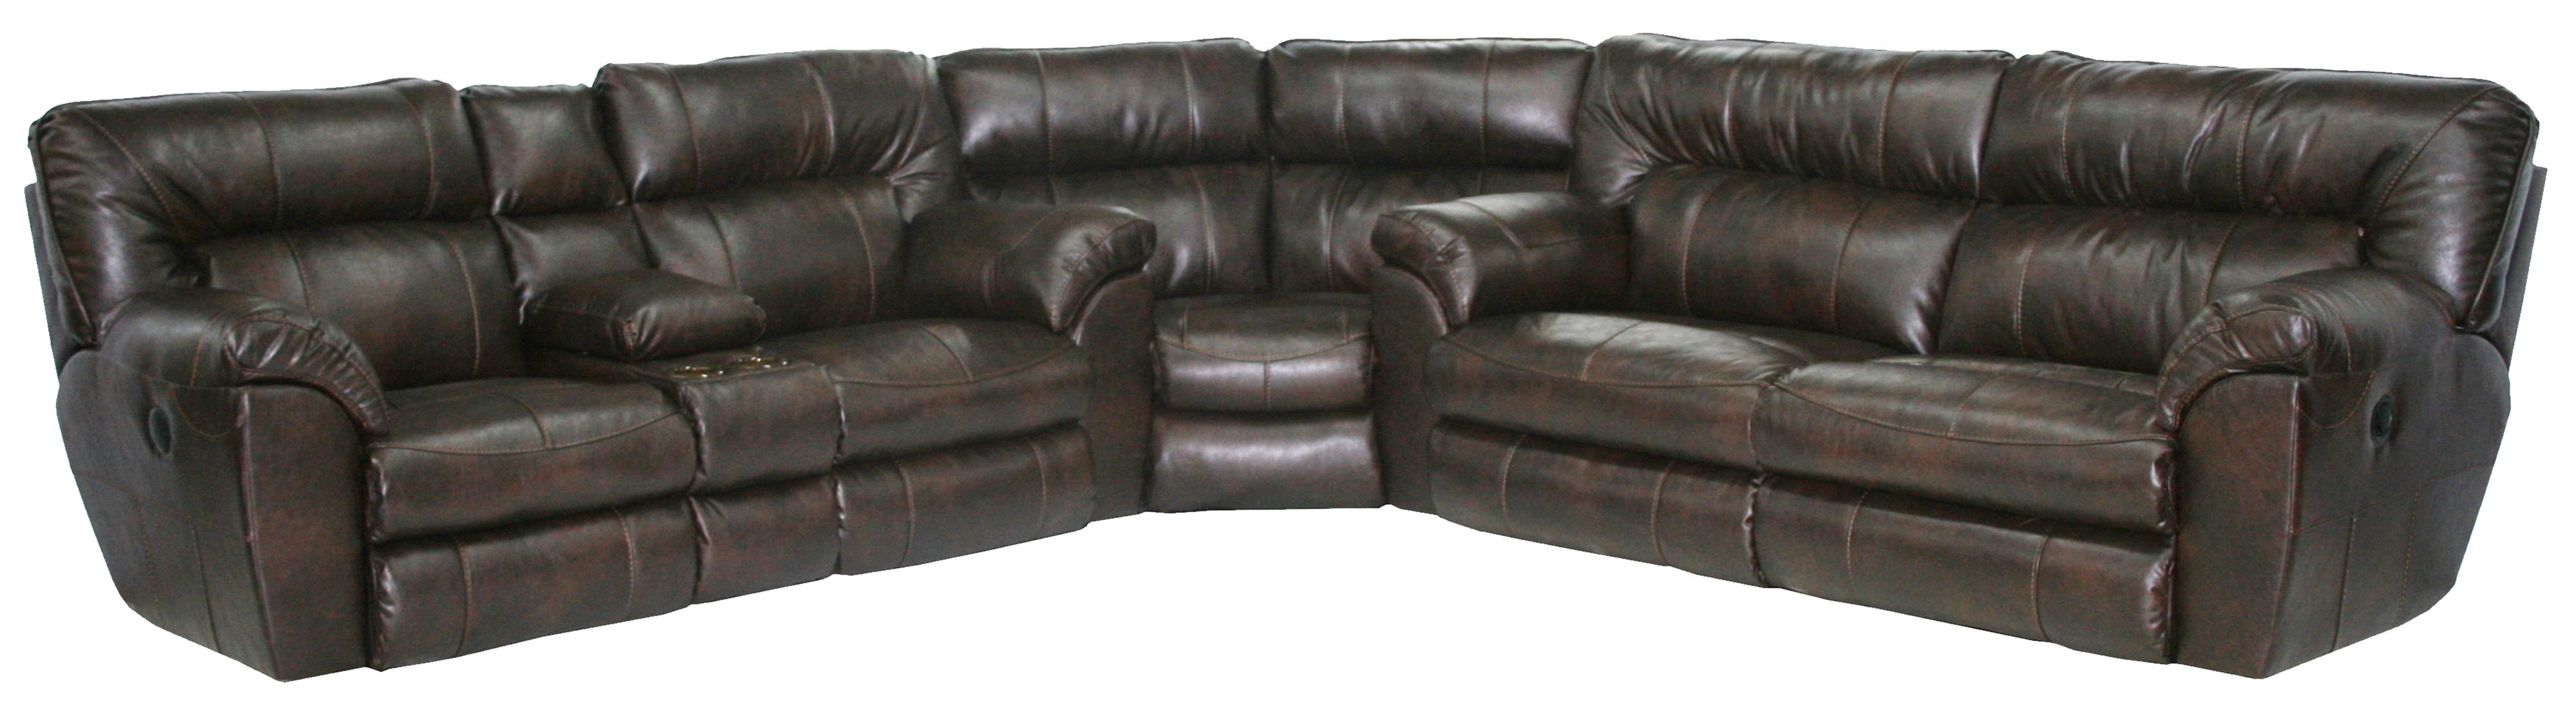 Power Reclining Sectional Sofa with Left Console by Catnapper